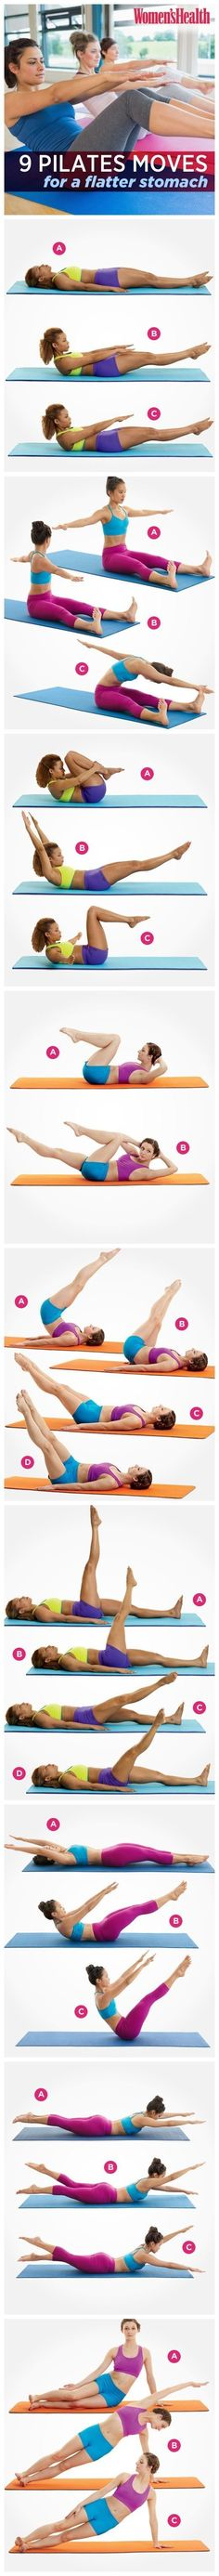 8 Pilates Exercises for a Tighter Tummy Bored with your abs workout? Try these 9 Pilates Moves For A Flatter Stomach. Pilates Abs, Pilates Training, Pilates Workout, Ab Workouts, At Home Workouts, Pilates Fitness, Workout Videos, Pilates Reformer, Yoga Videos